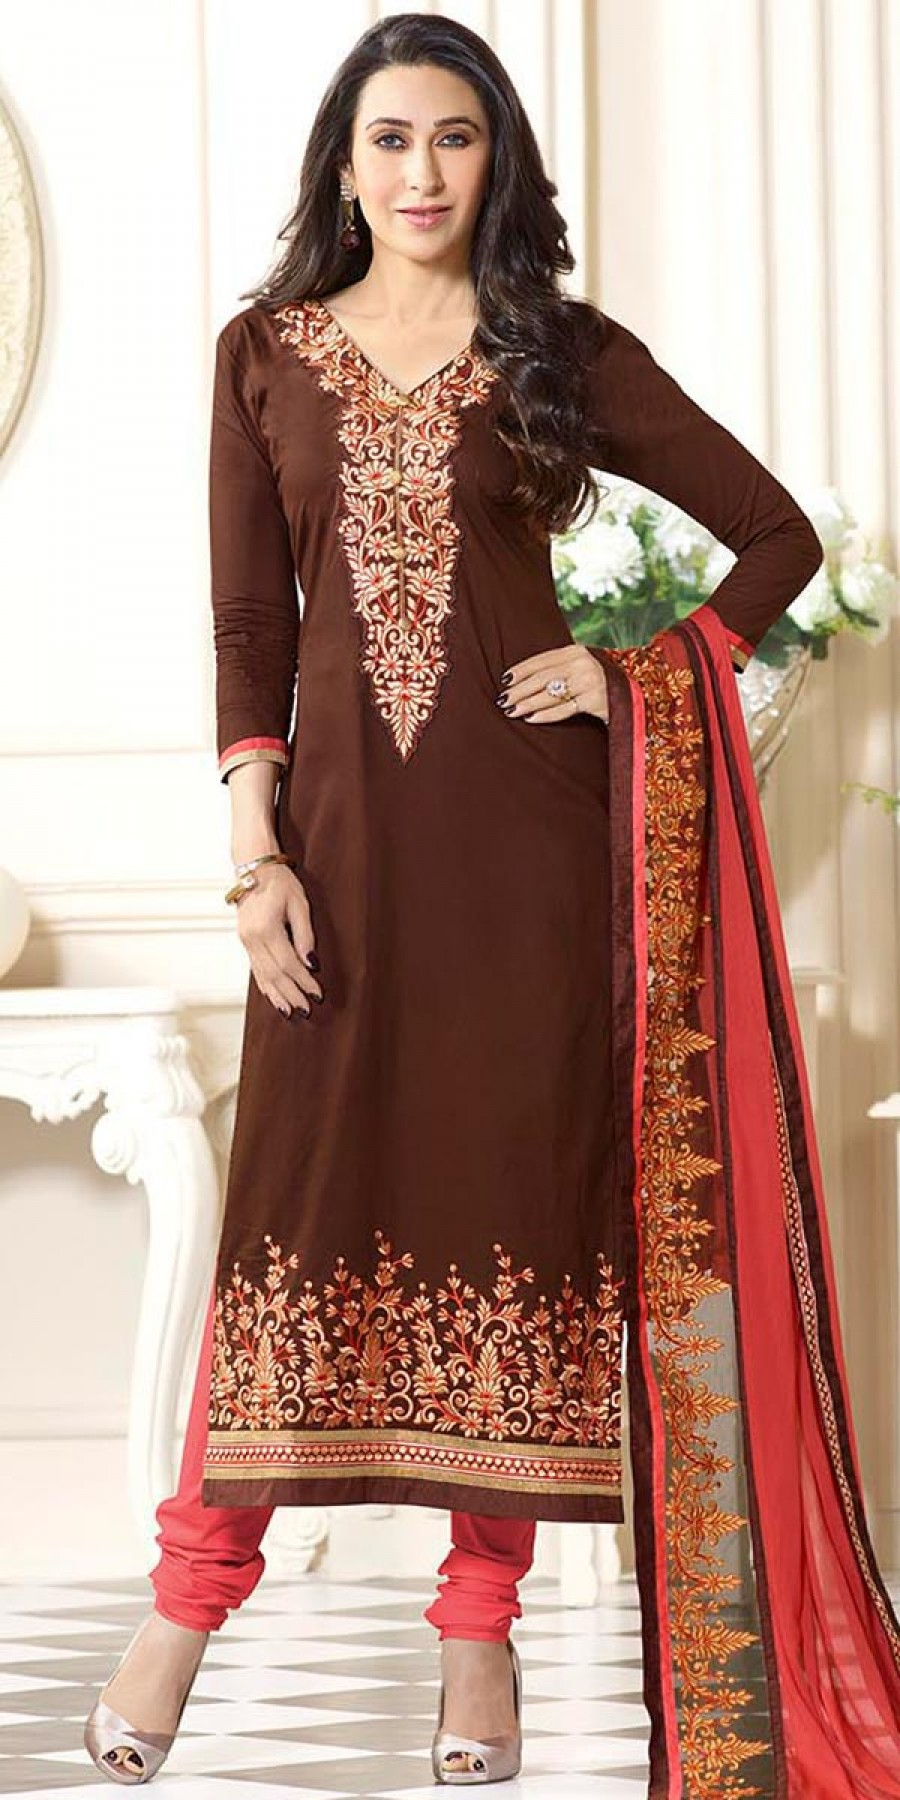 Buy Karishma Kapoor Brown And Peach Cotton Salwar Suit With Dupatta. Online